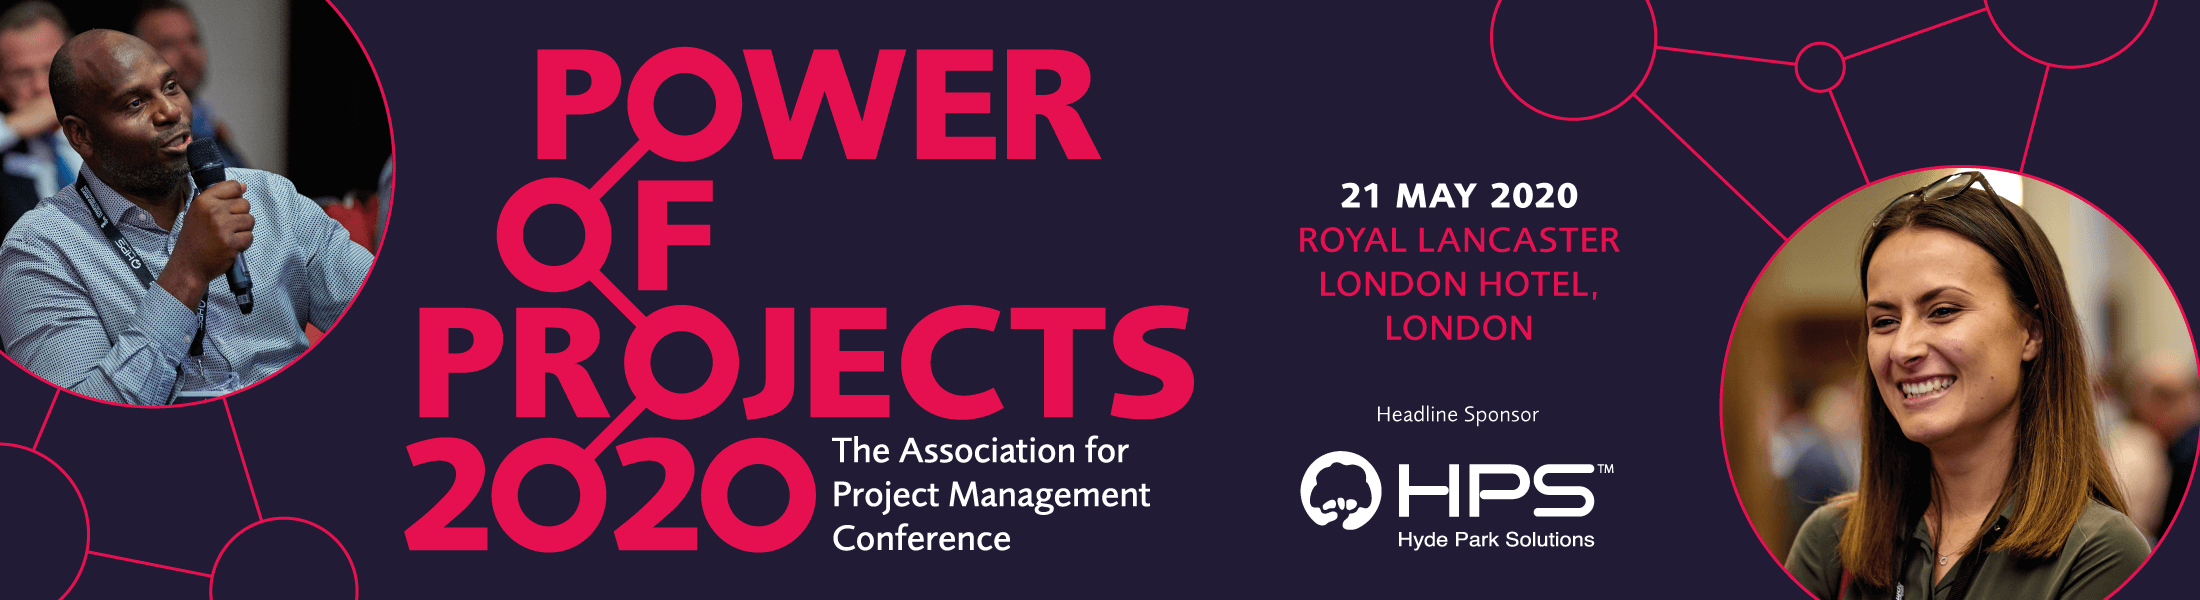 APM Conference 2020 - Power of Projects - London